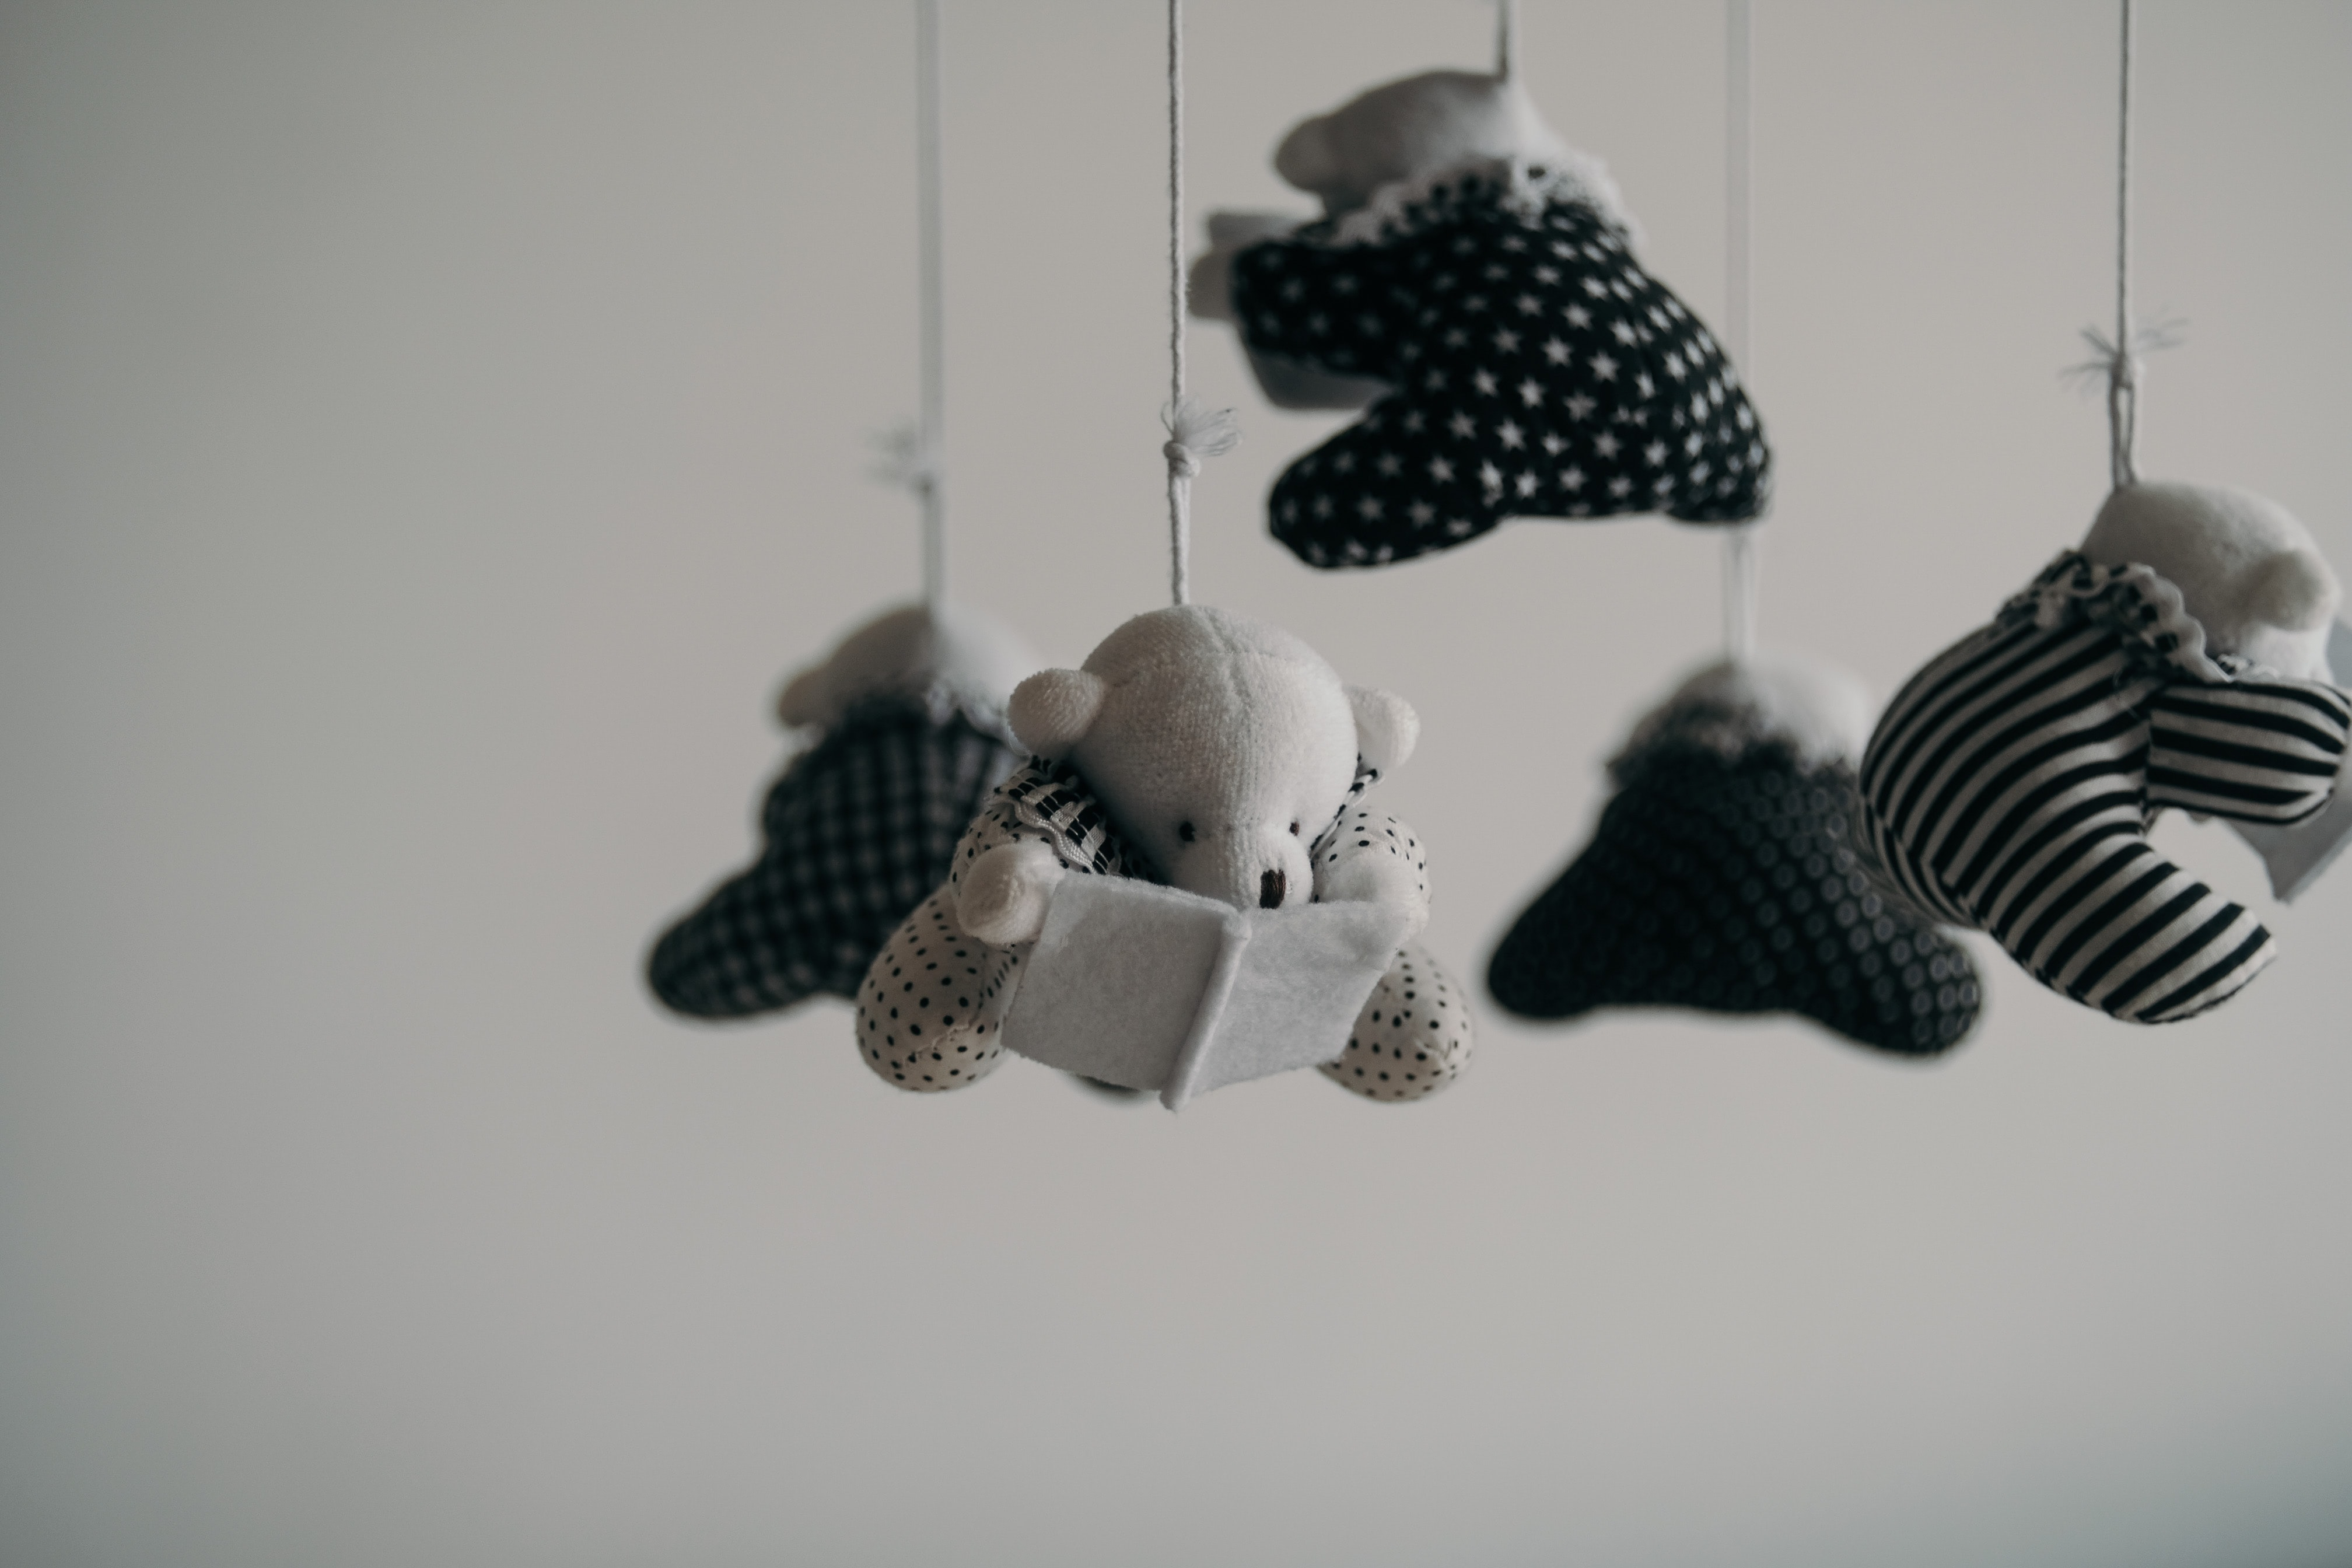 The black and white baby mobile represents the intersection between infertility trauma and racial trauma.